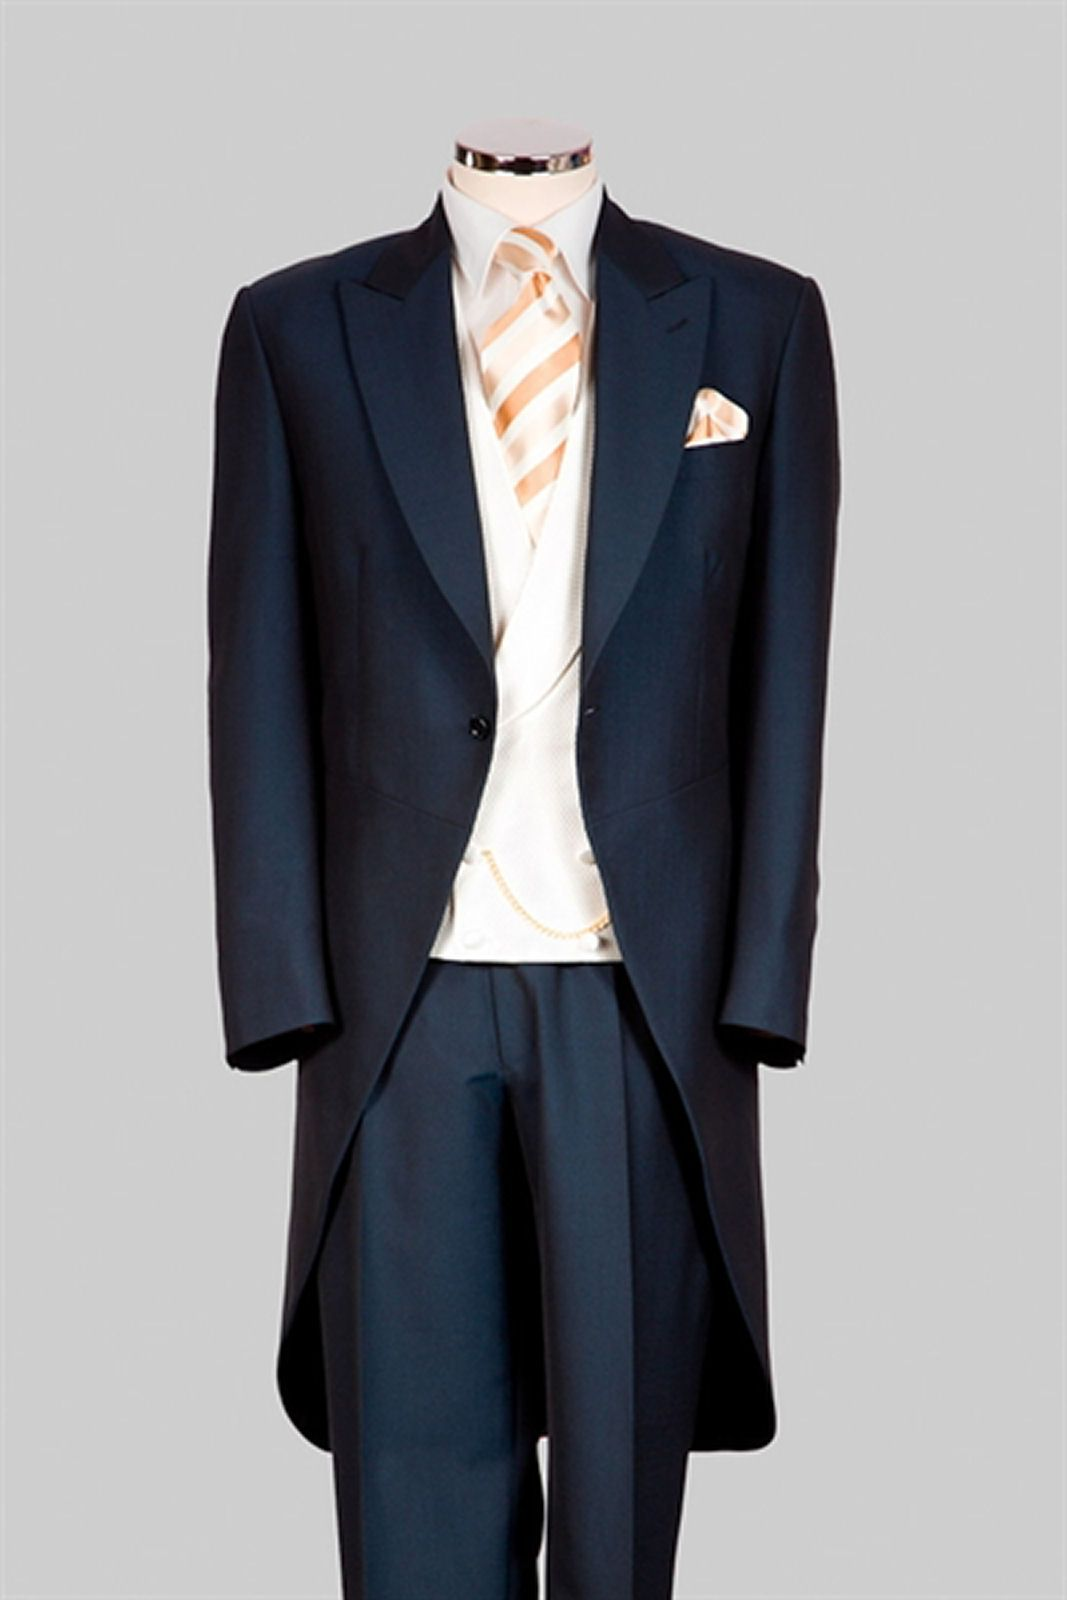 Pure style with a hint of colour from simon james the groomus